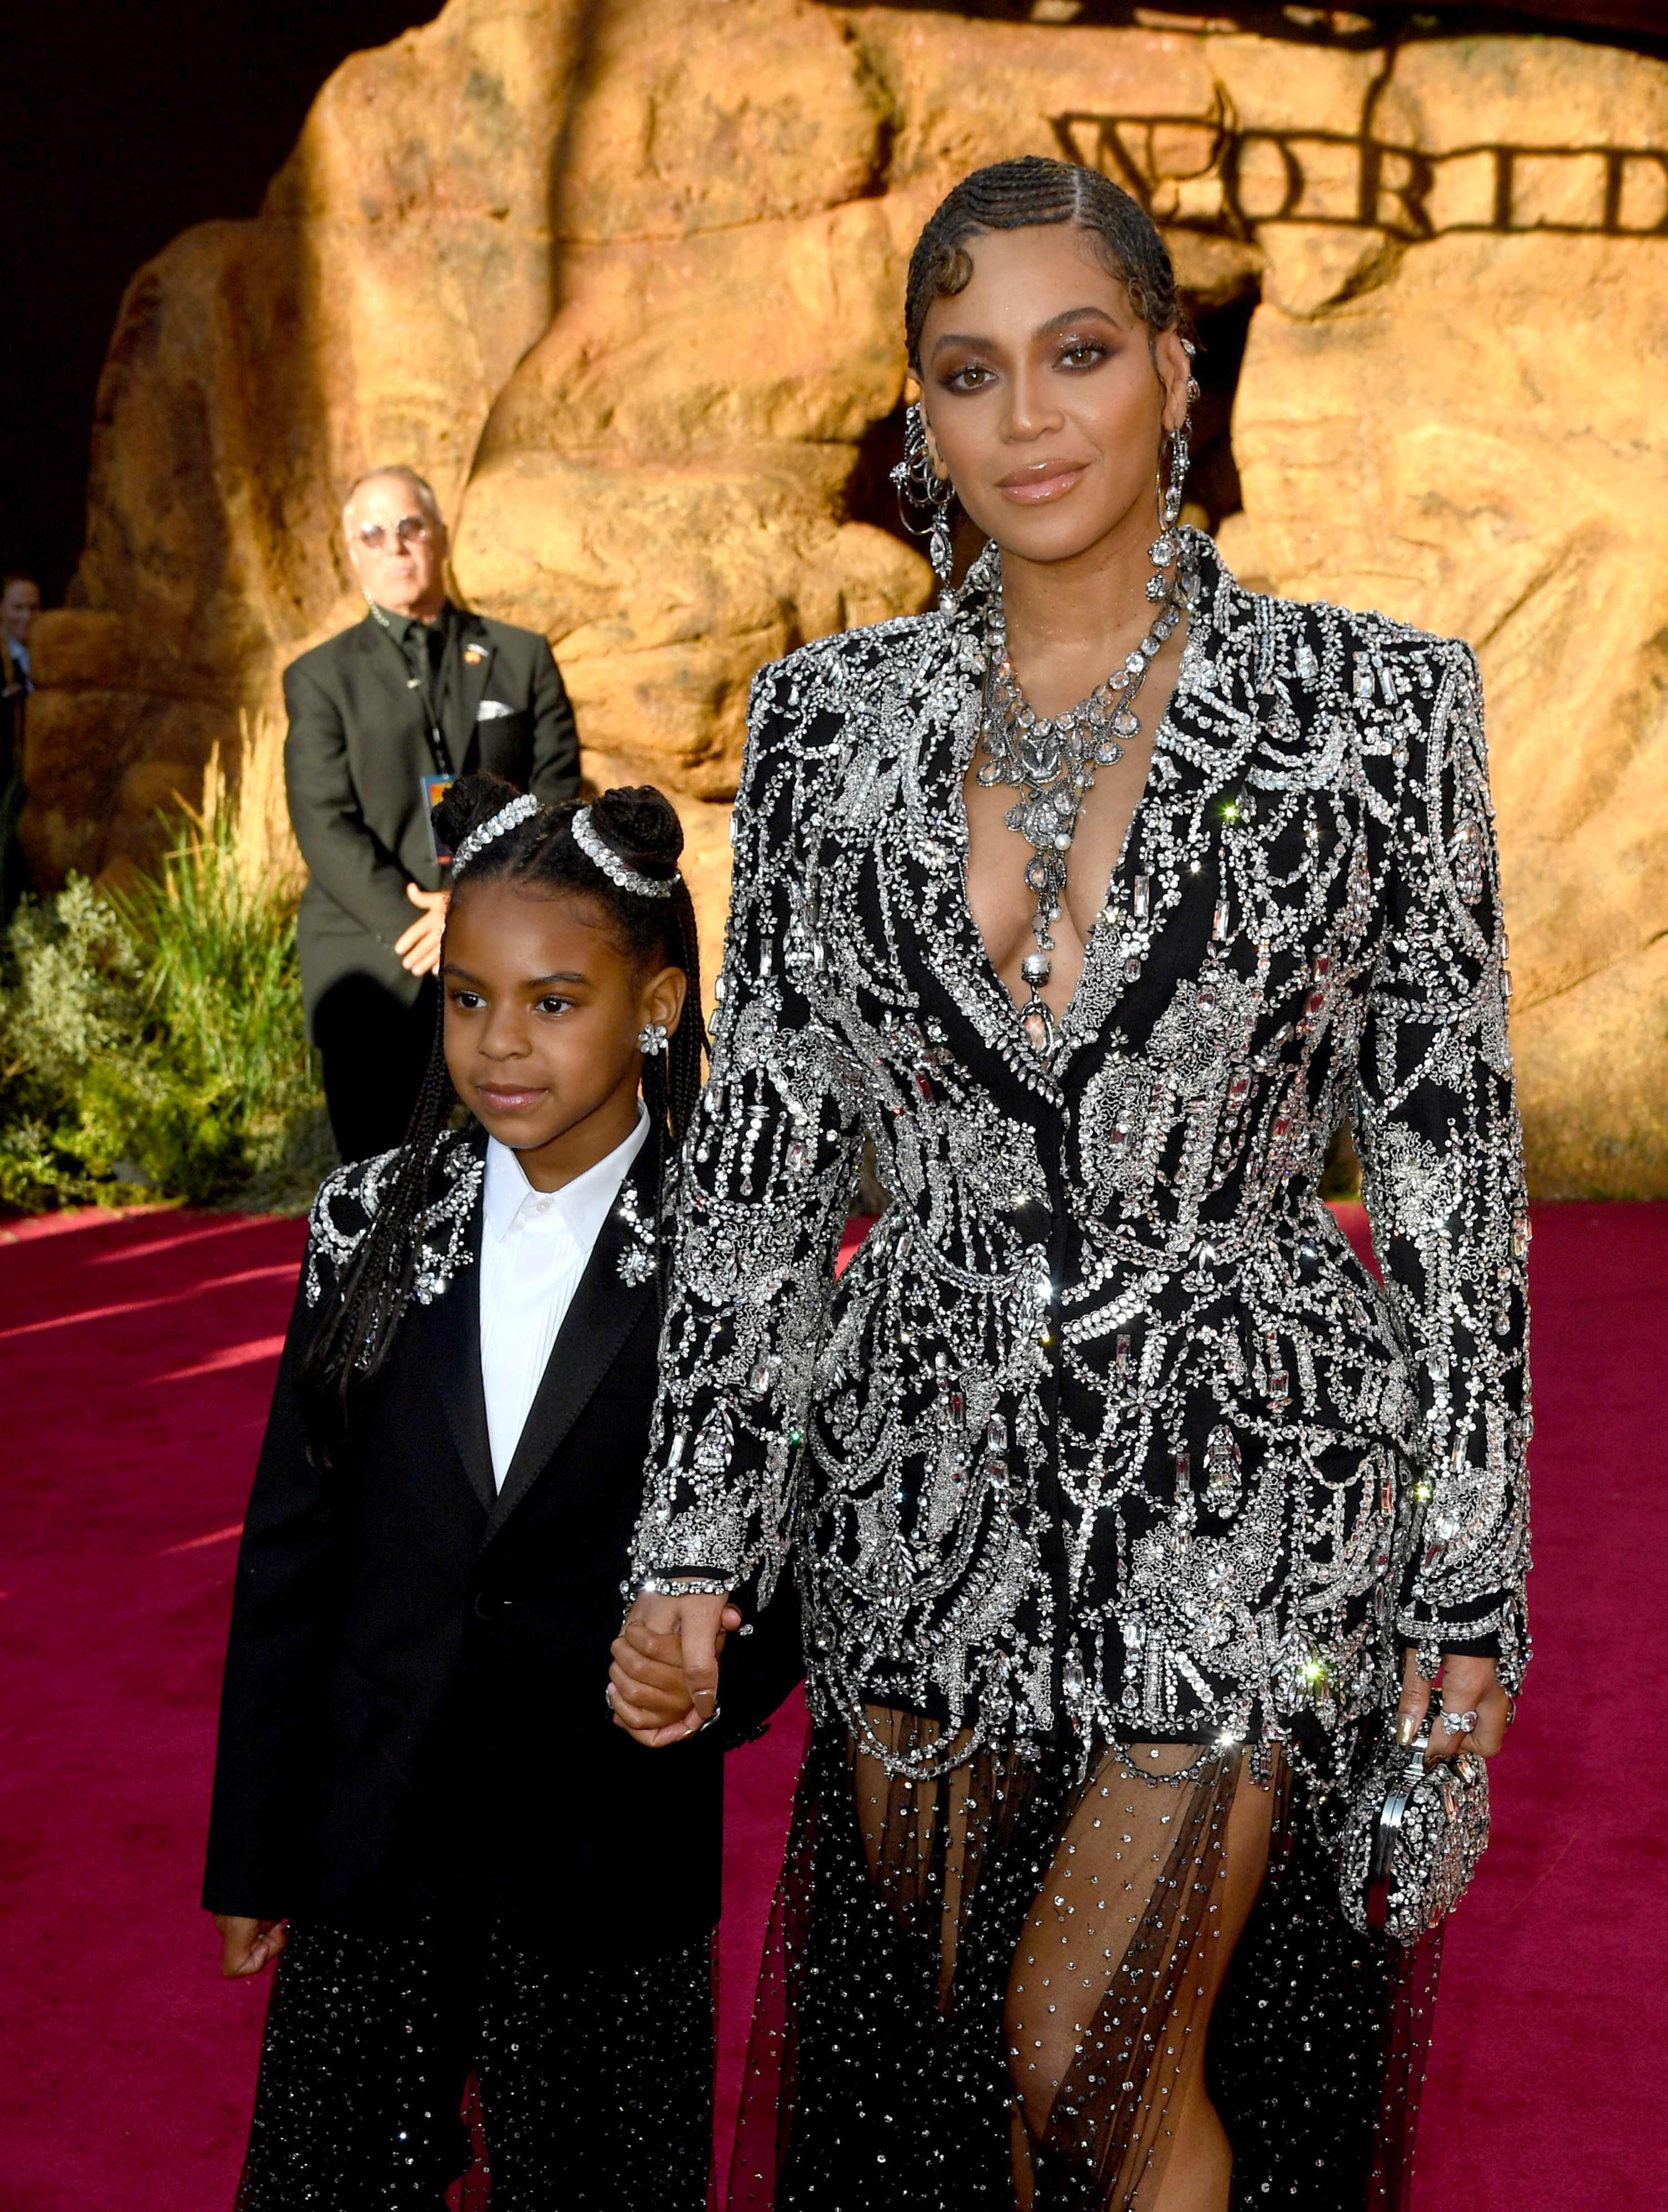 Blue Ivy and Beyoncé at the Hollywood premiere of The Lion King in 2019